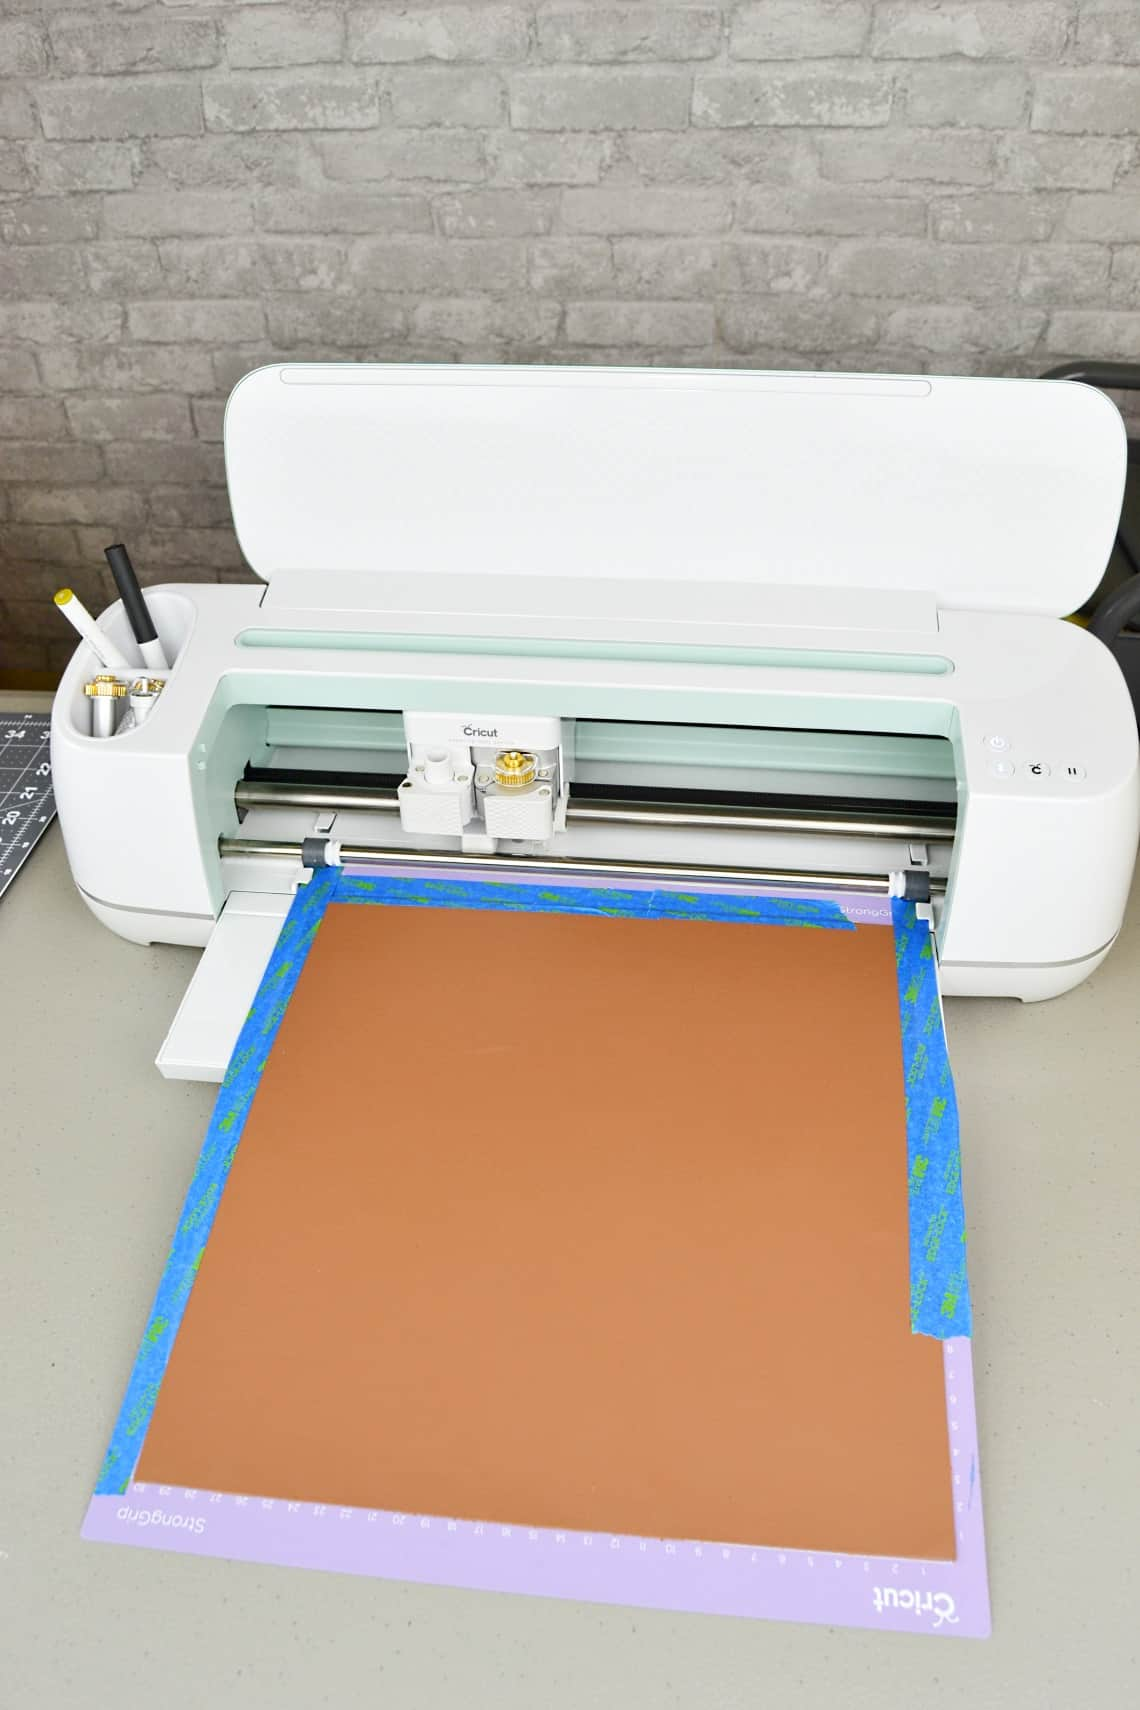 the Cricut Maker with the leather sheet loaded onto the mat and ready to cut